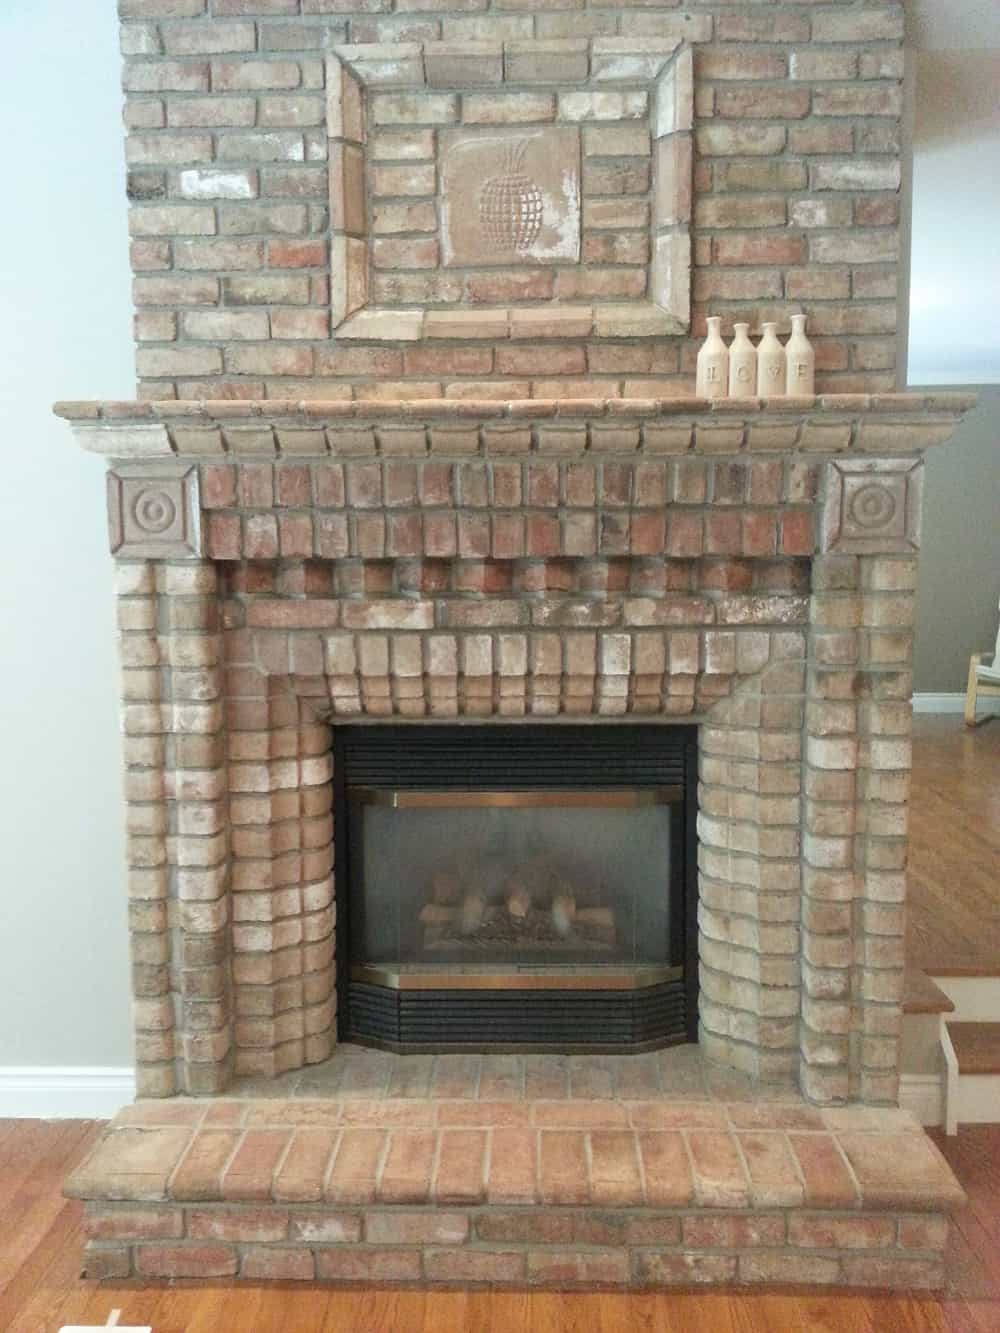 Removing Gas Fireplace Insert How To Convert A Gas Fireplace To Electric | Stylish